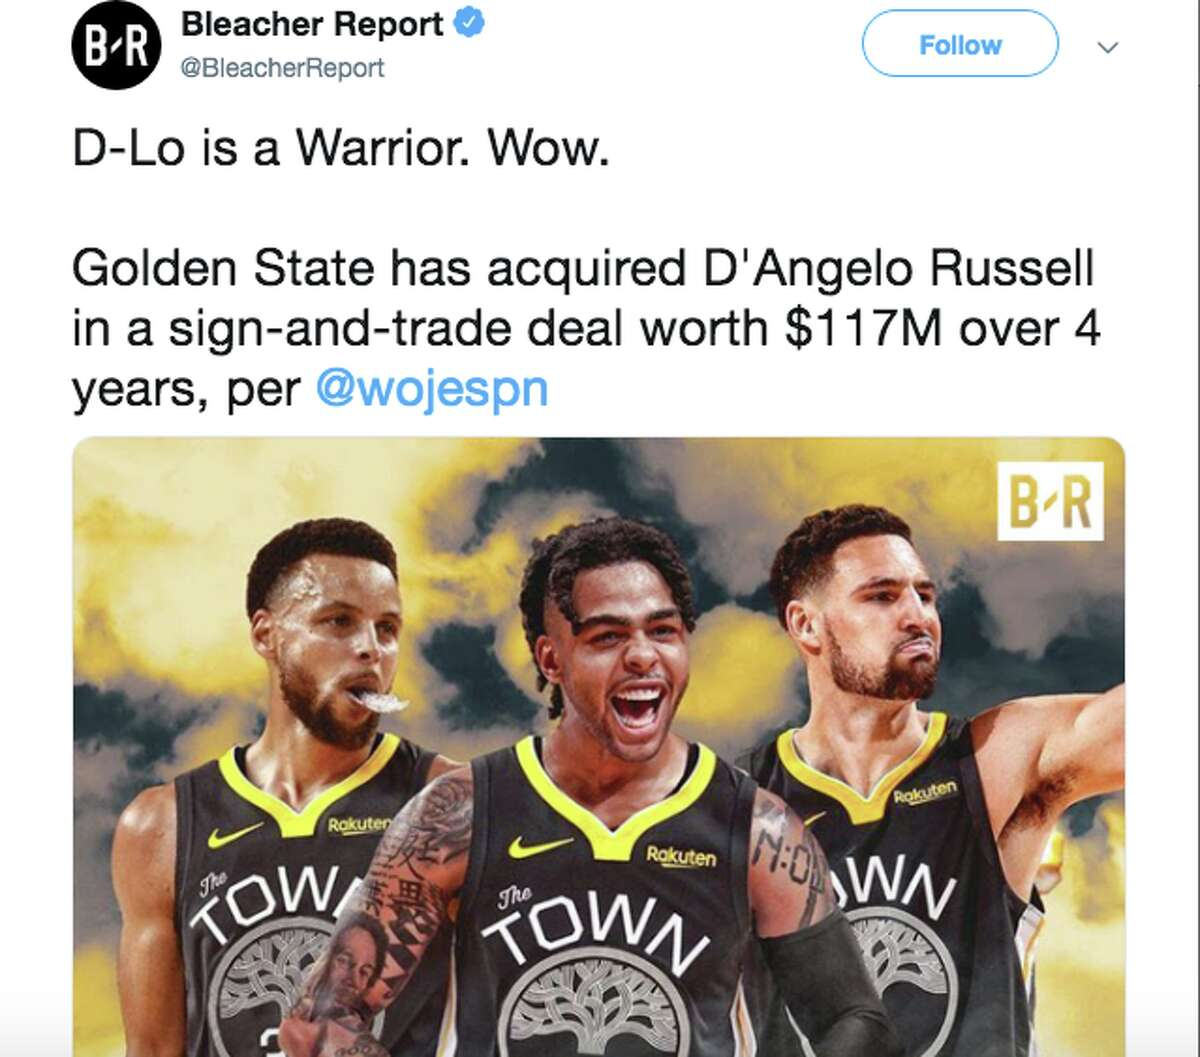 The Warriors acquiring D'Angelo Russell and trading away Andre Iguodala left fans and analysts in shock.